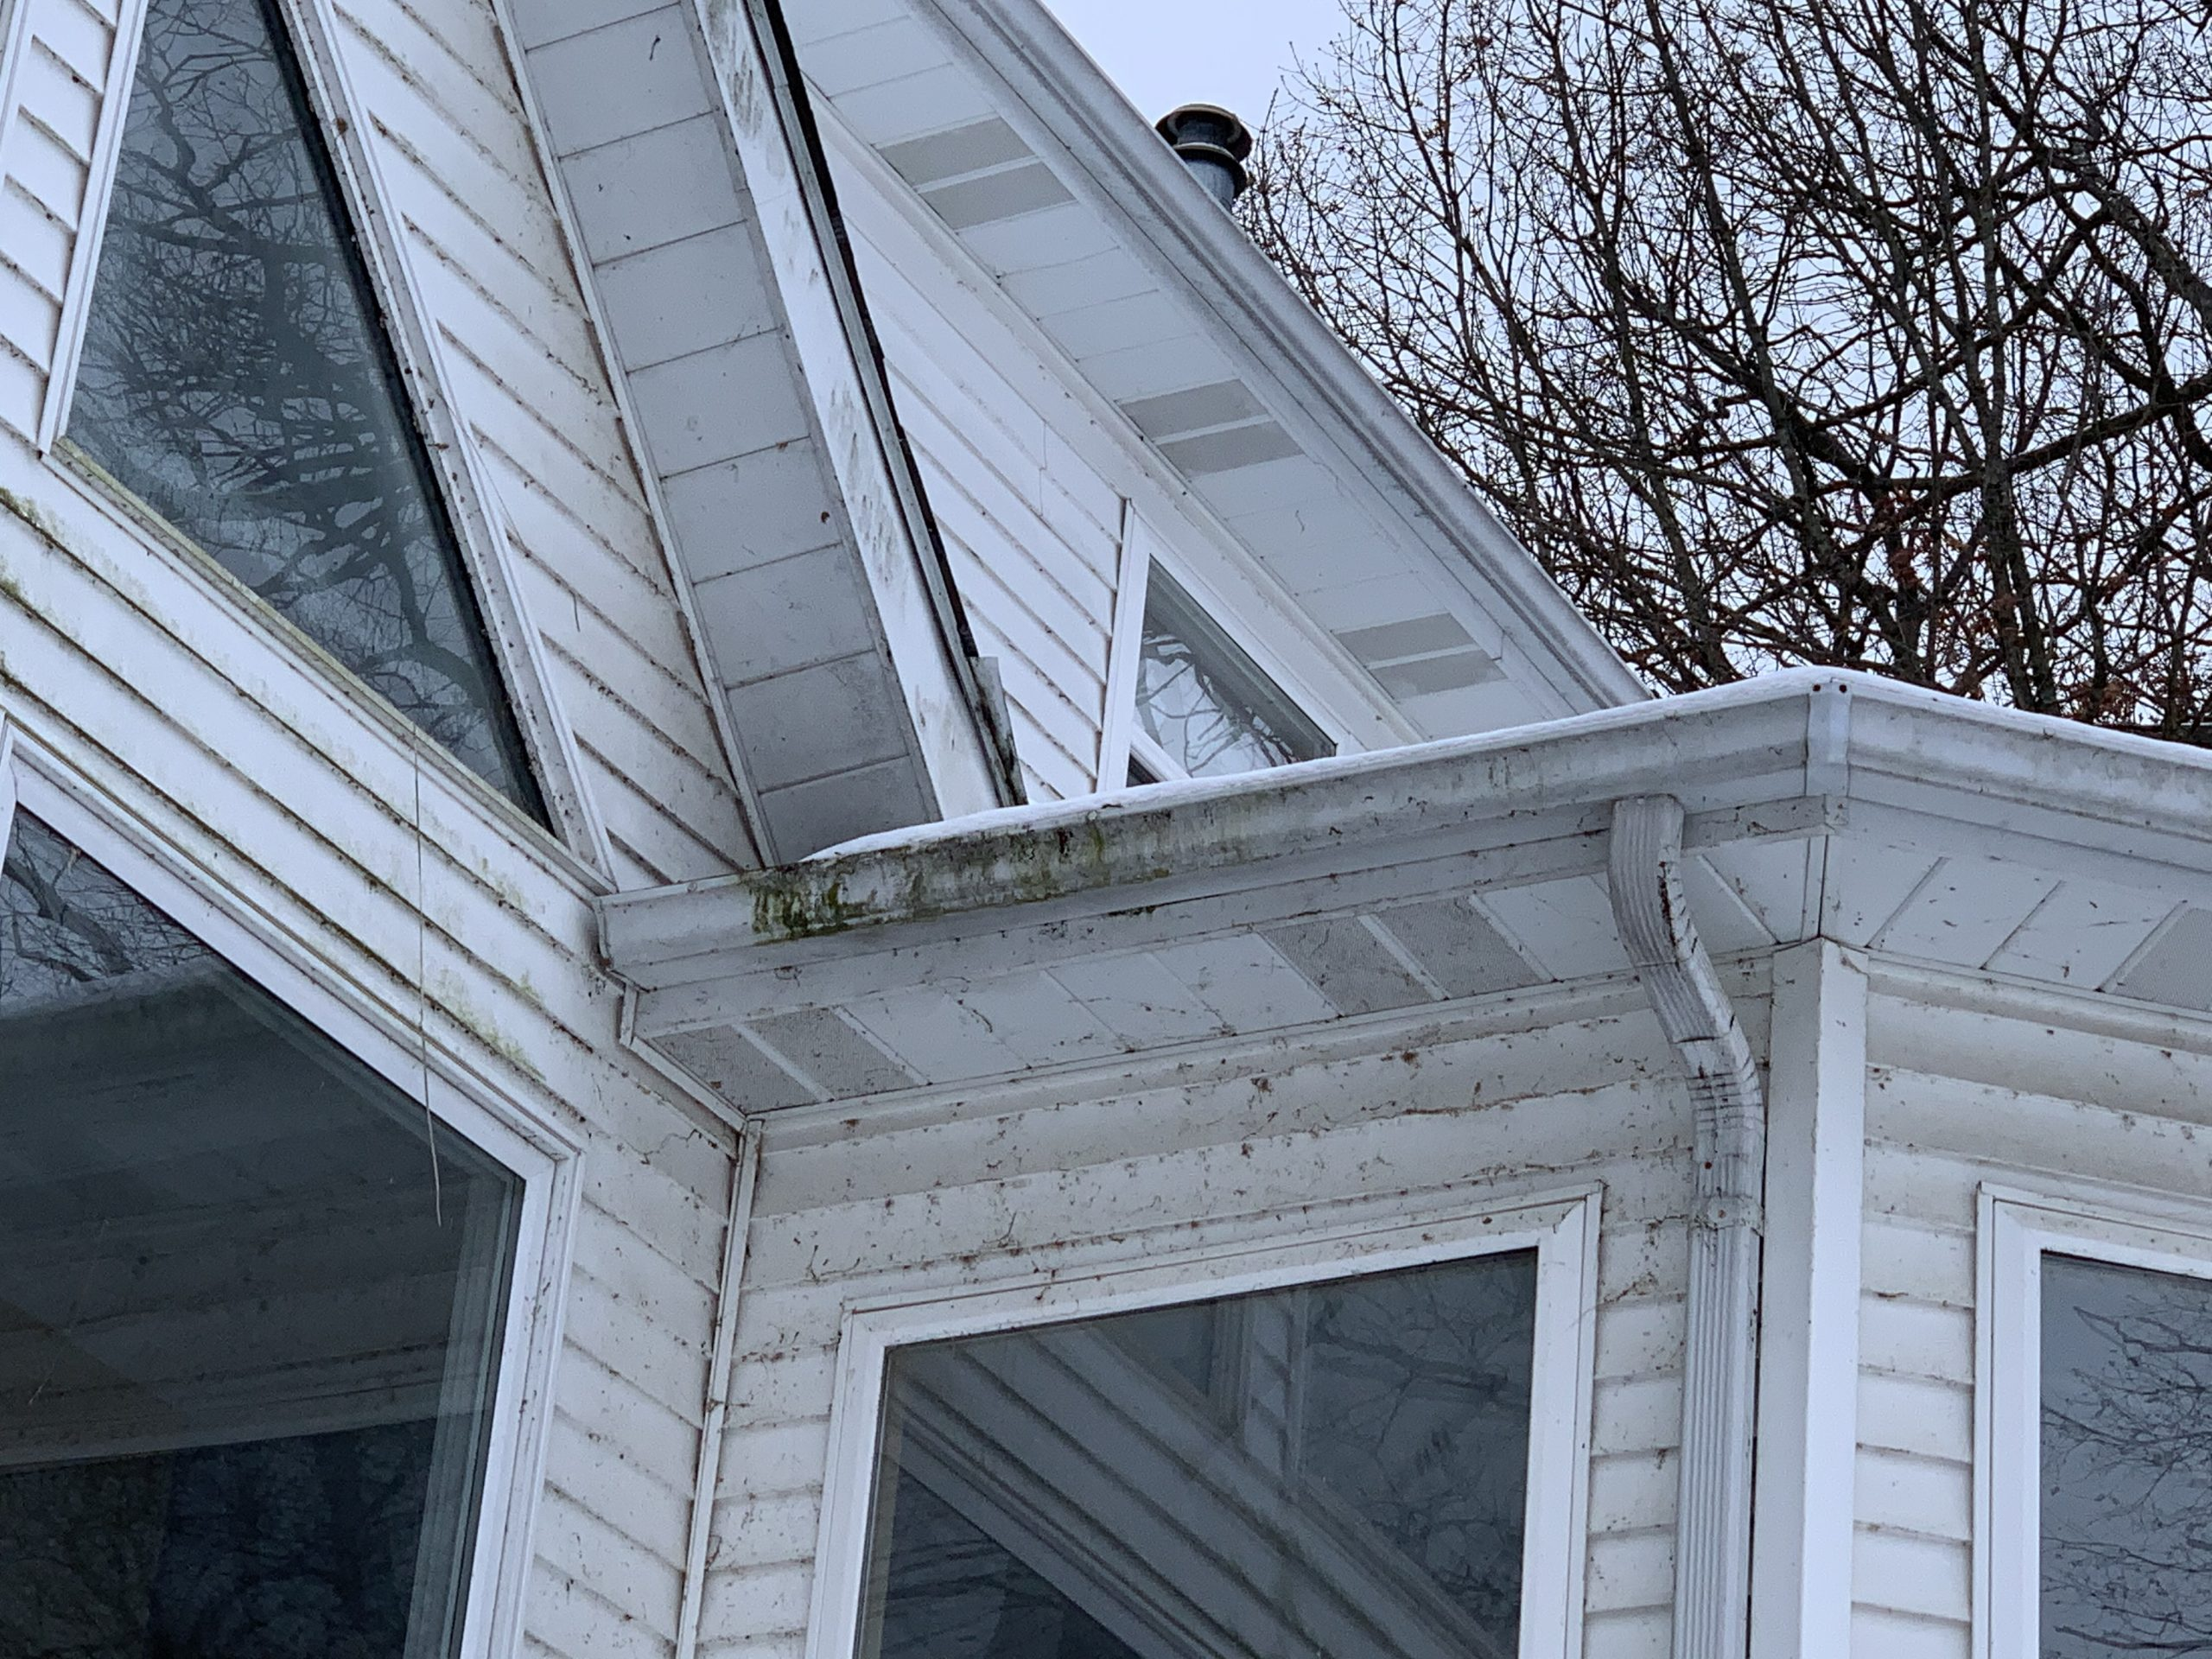 Gutter Overflow issues